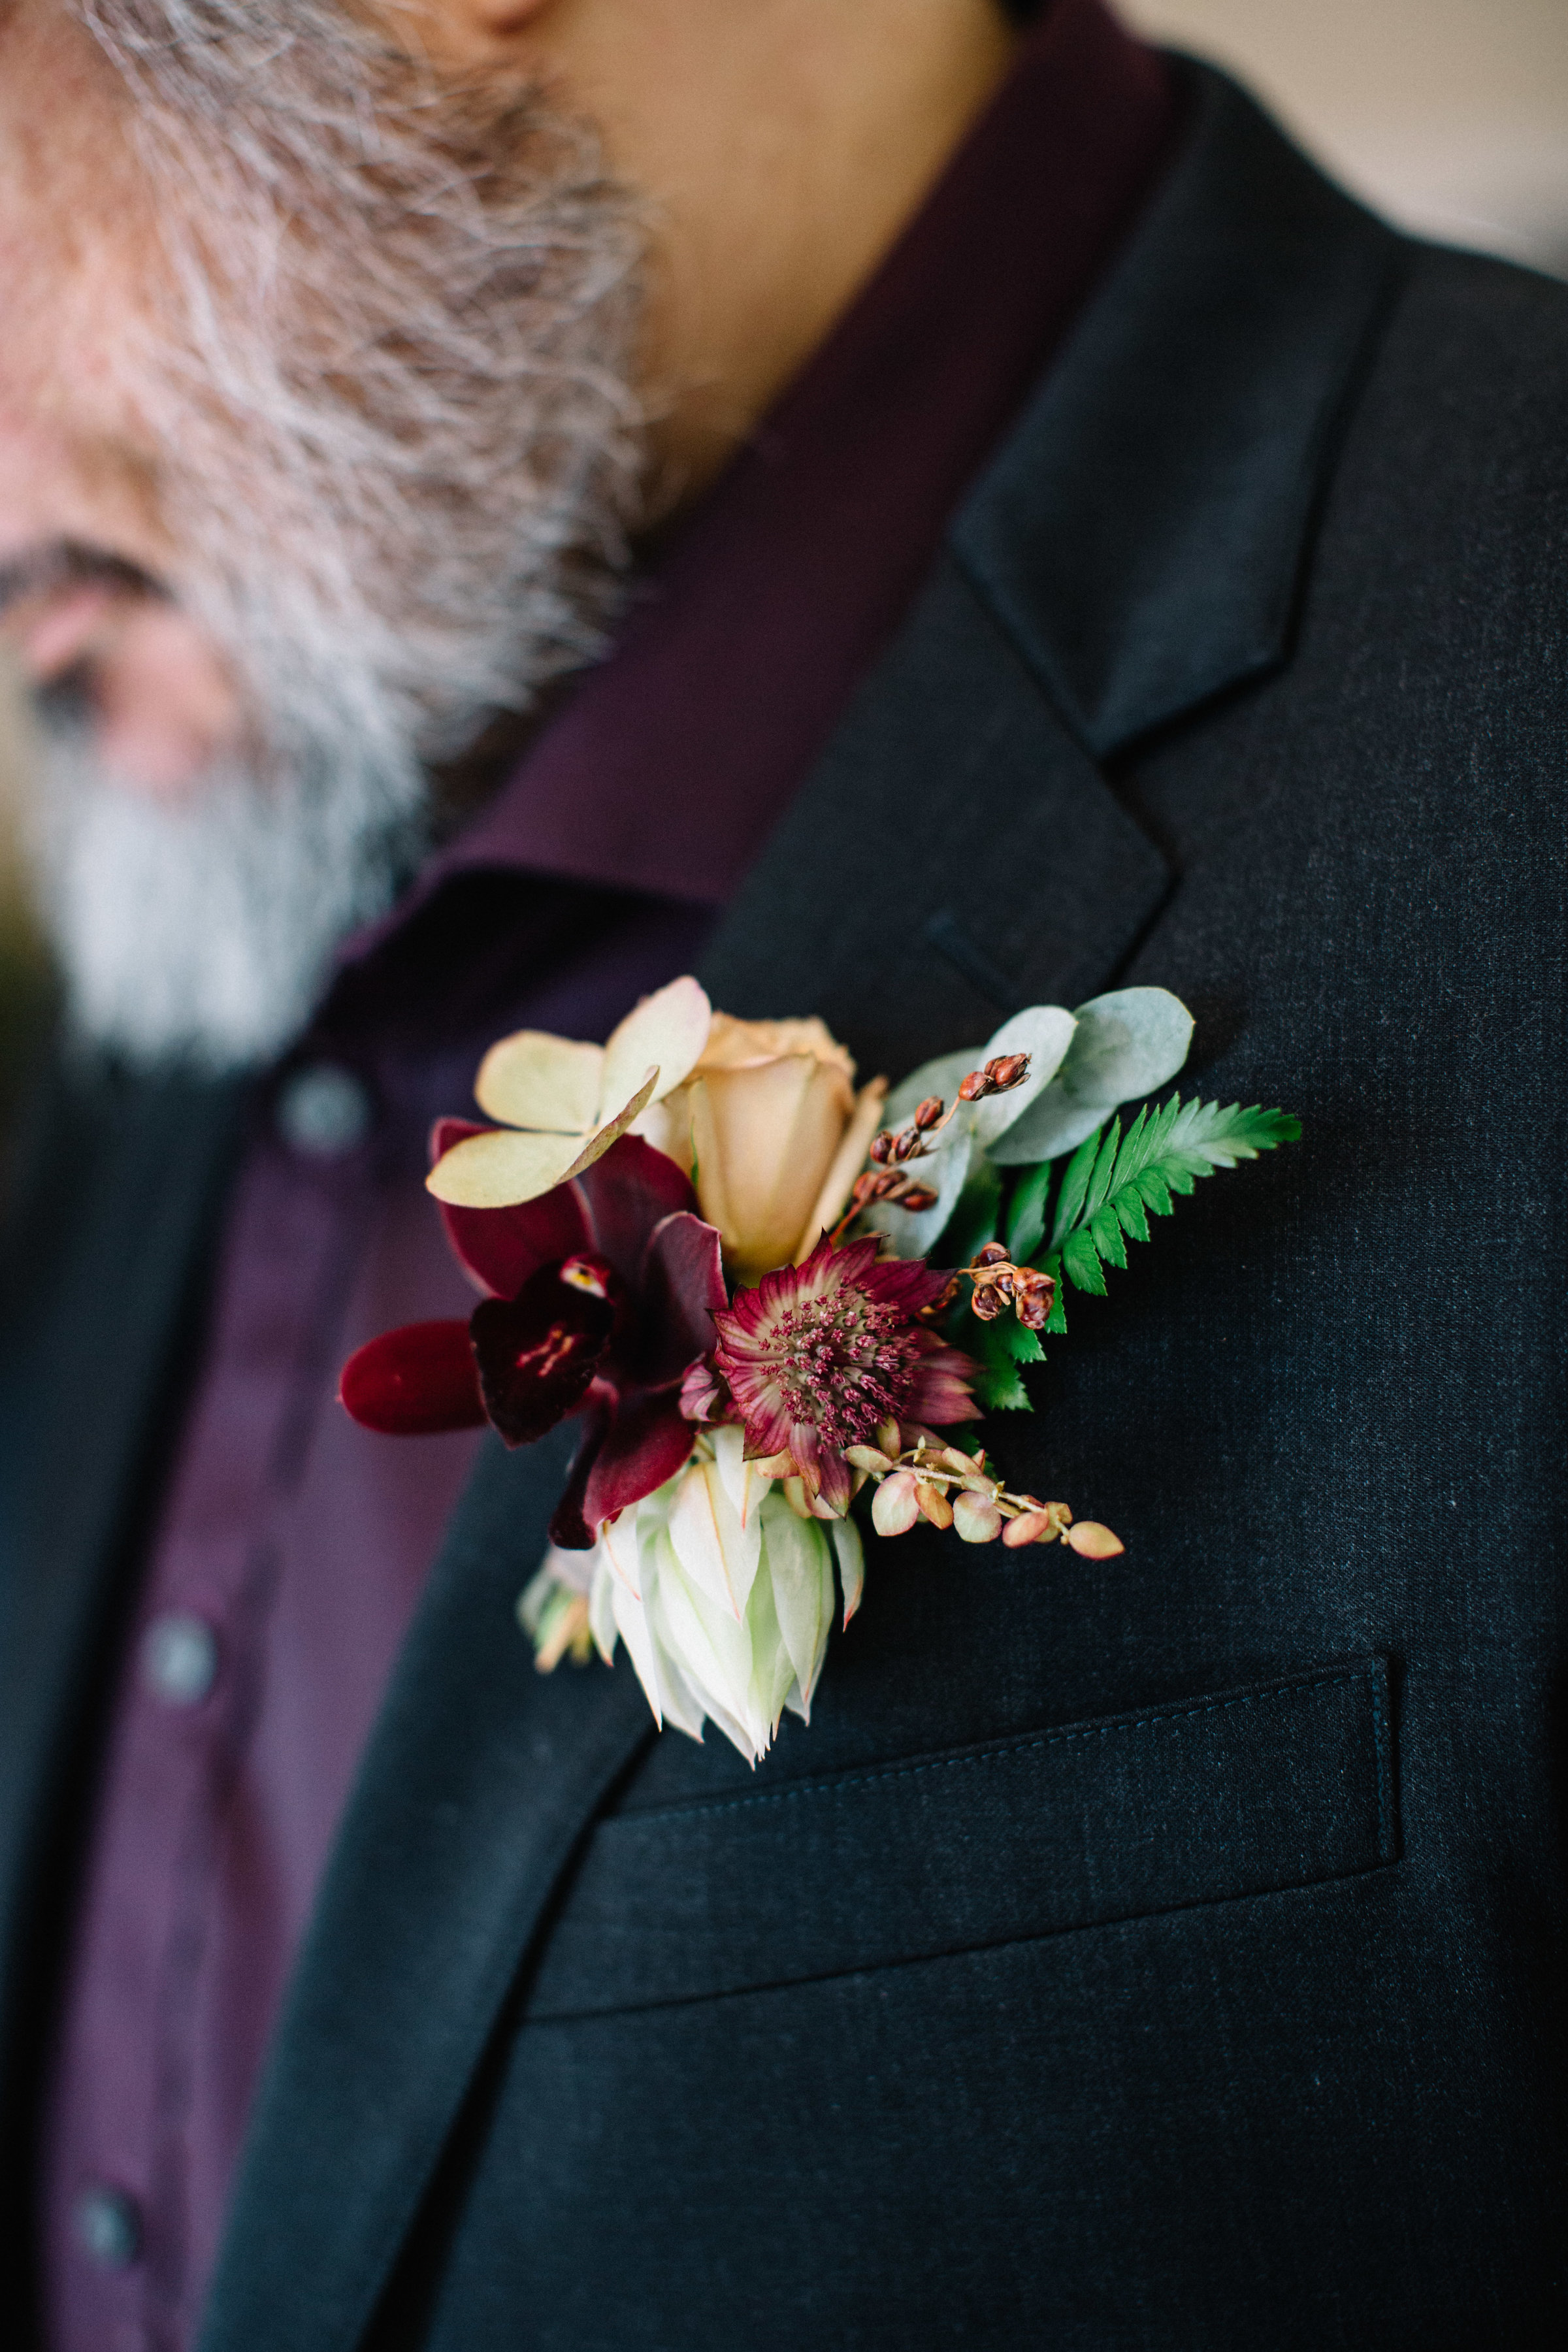 Gold and burgundy boutonnieres by Venn Floral photographed by Lucille Lawrence in Northern California at Straus Home Ranch with Mendocino Weddings.